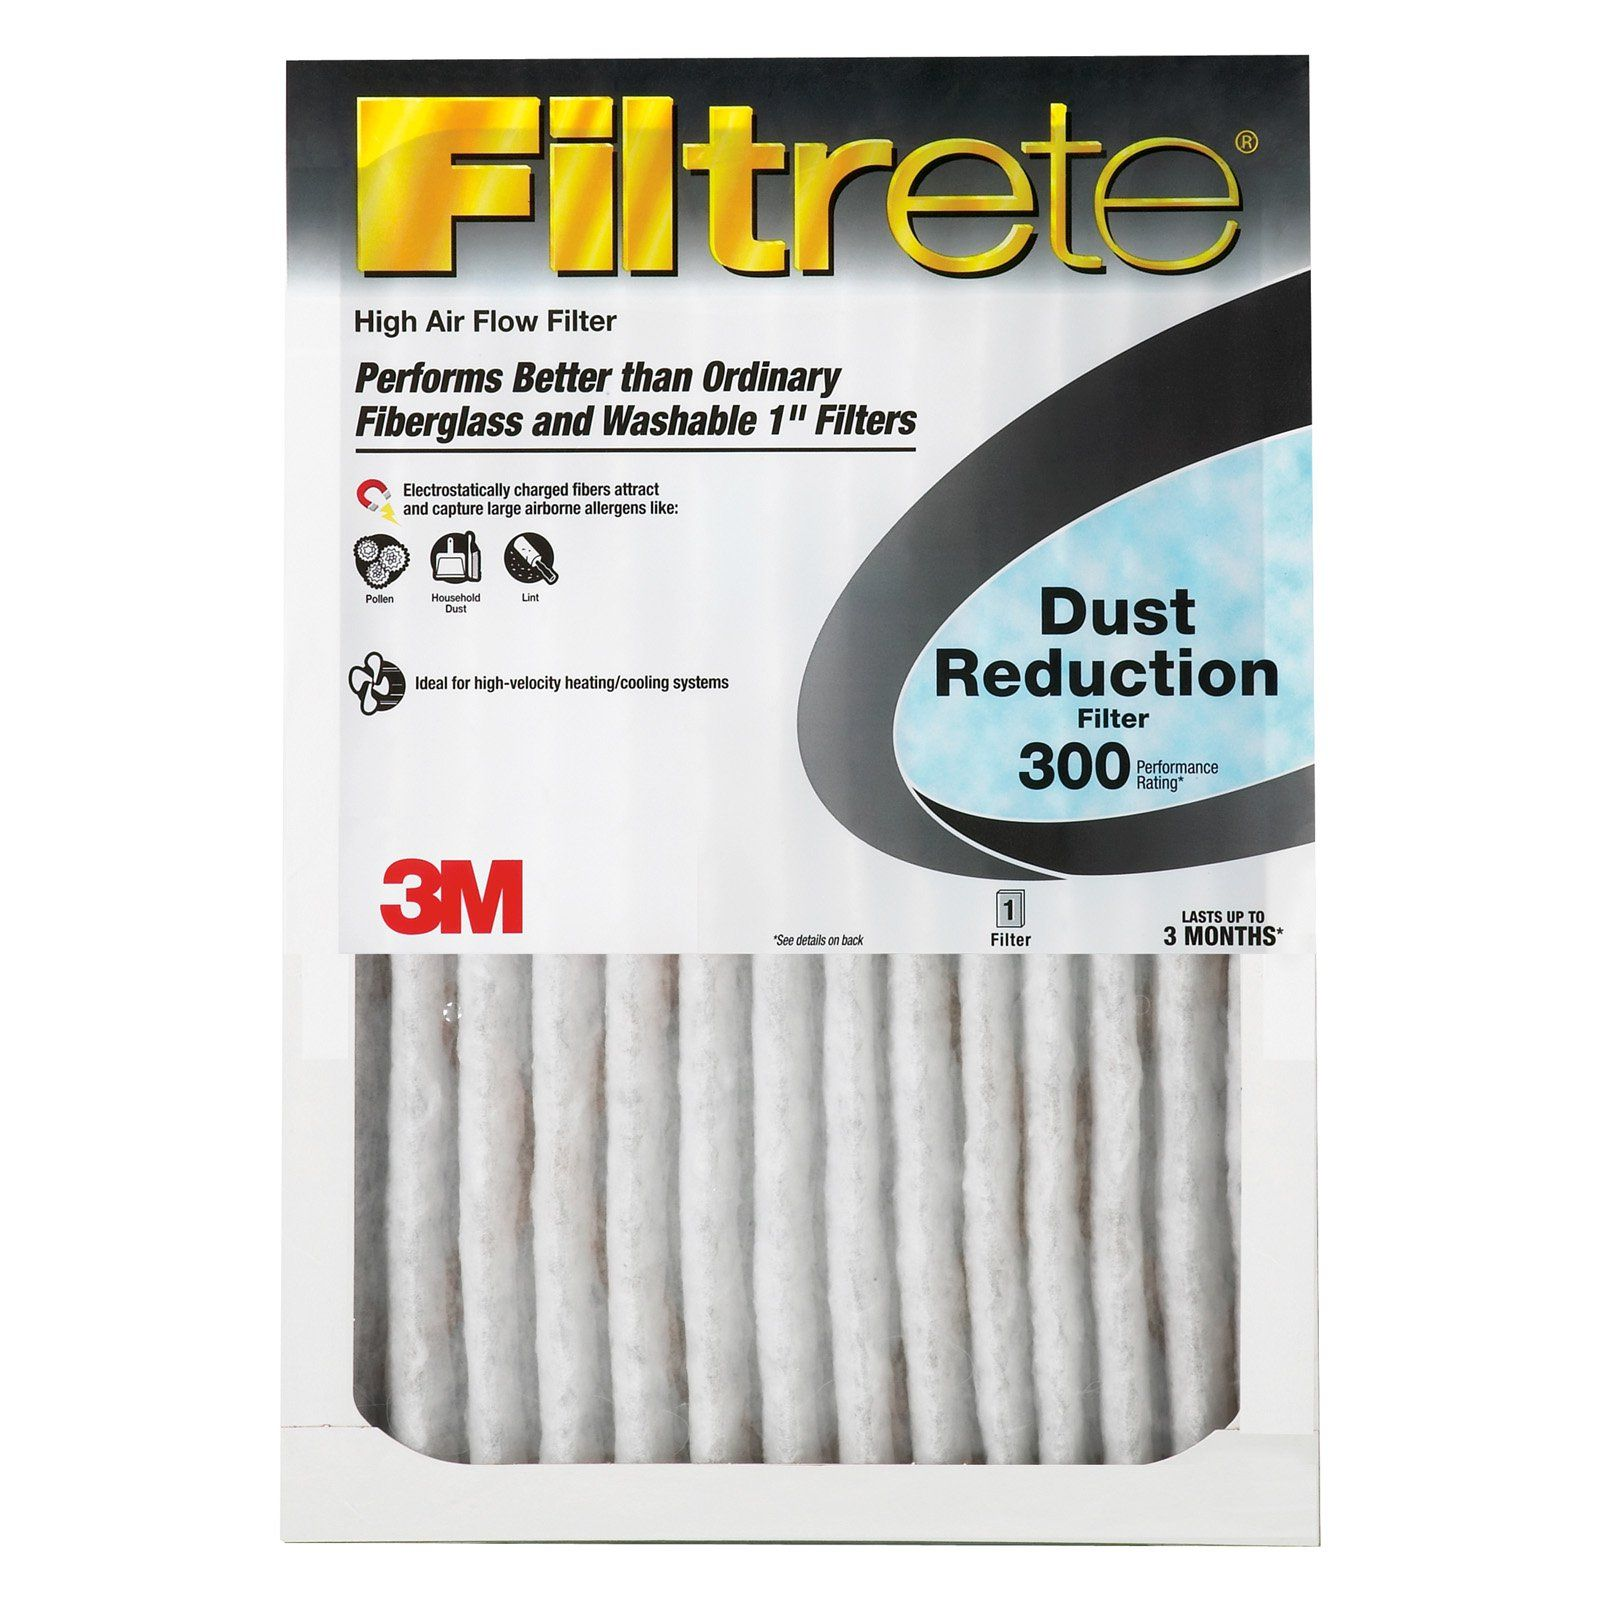 3M 320DC6 Filtreteâ ¢ Dust Reduction Filters 6 Pack